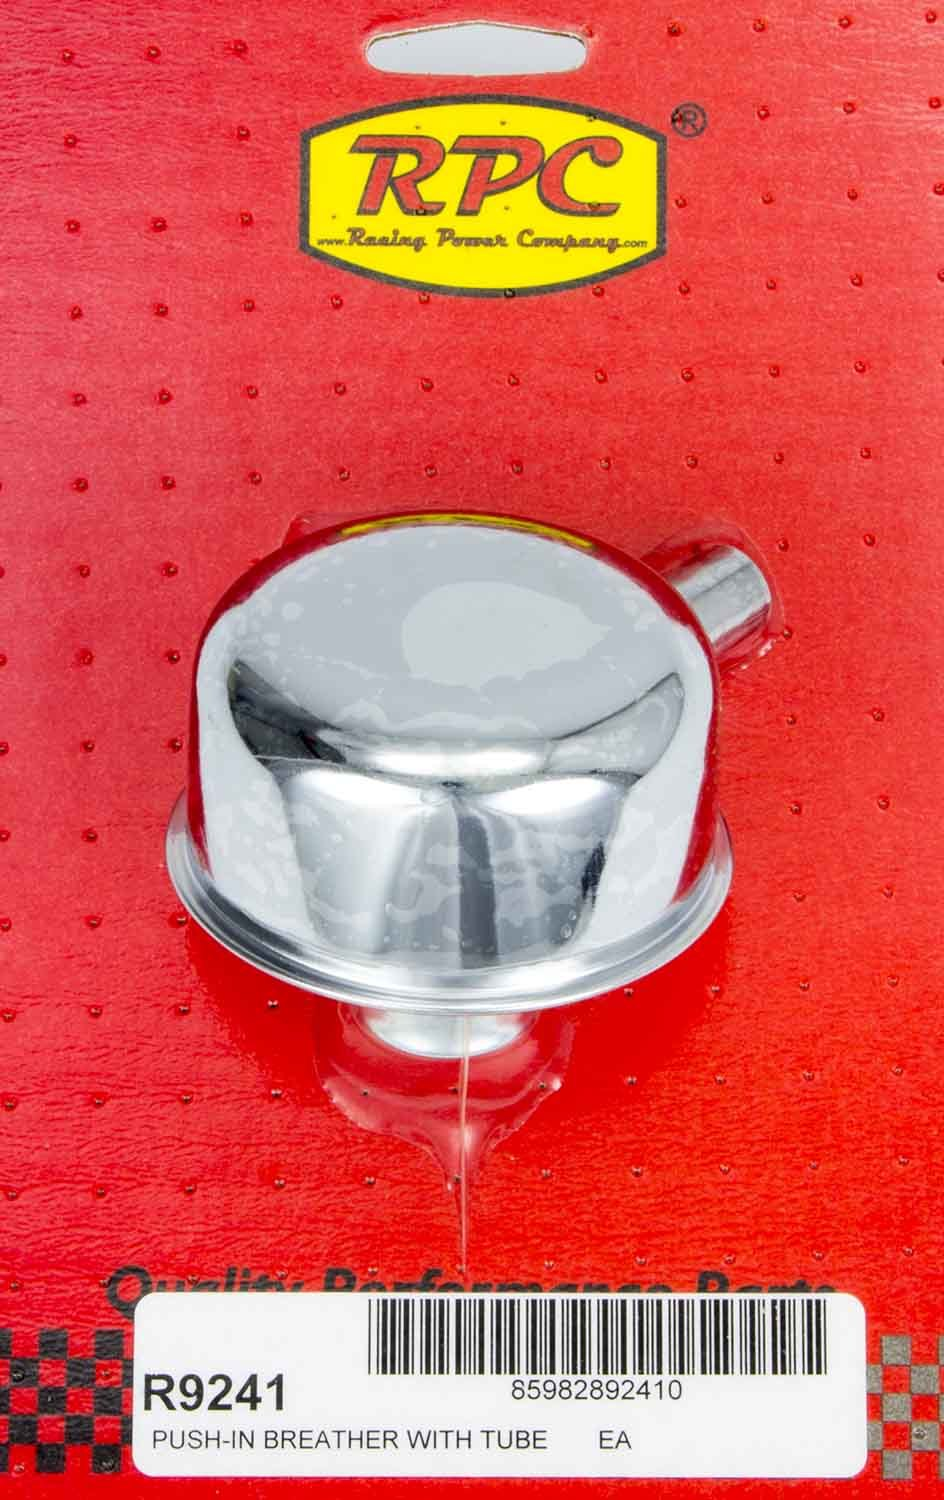 Racing Power Company R9241 Breather, Push-In, Round, 1-1/4 in Hole, 3/8 in Hose Evacuation Fitting, Steel, Chrome, Each